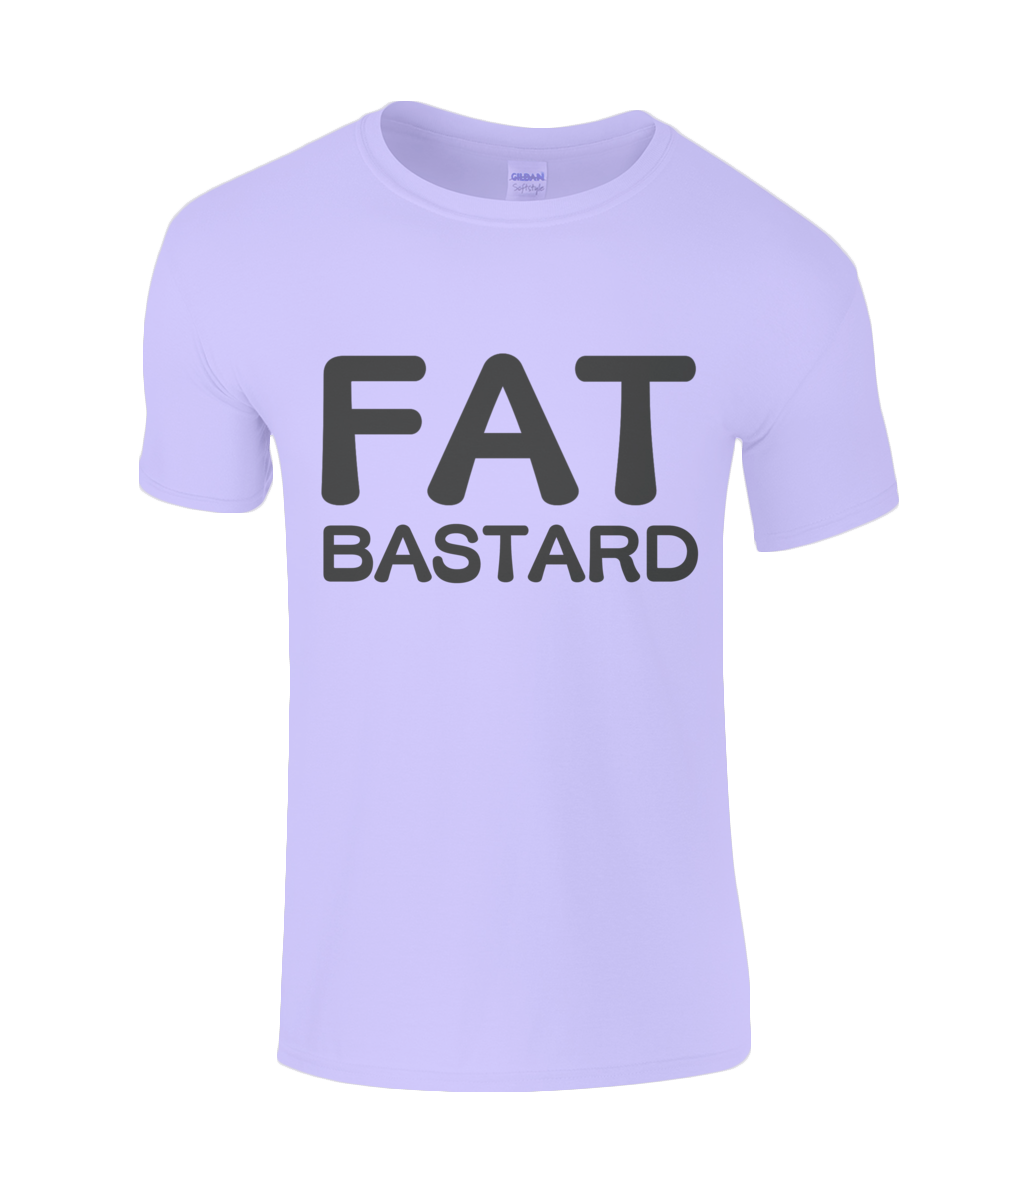 Fat Bastard - men's t-shirt